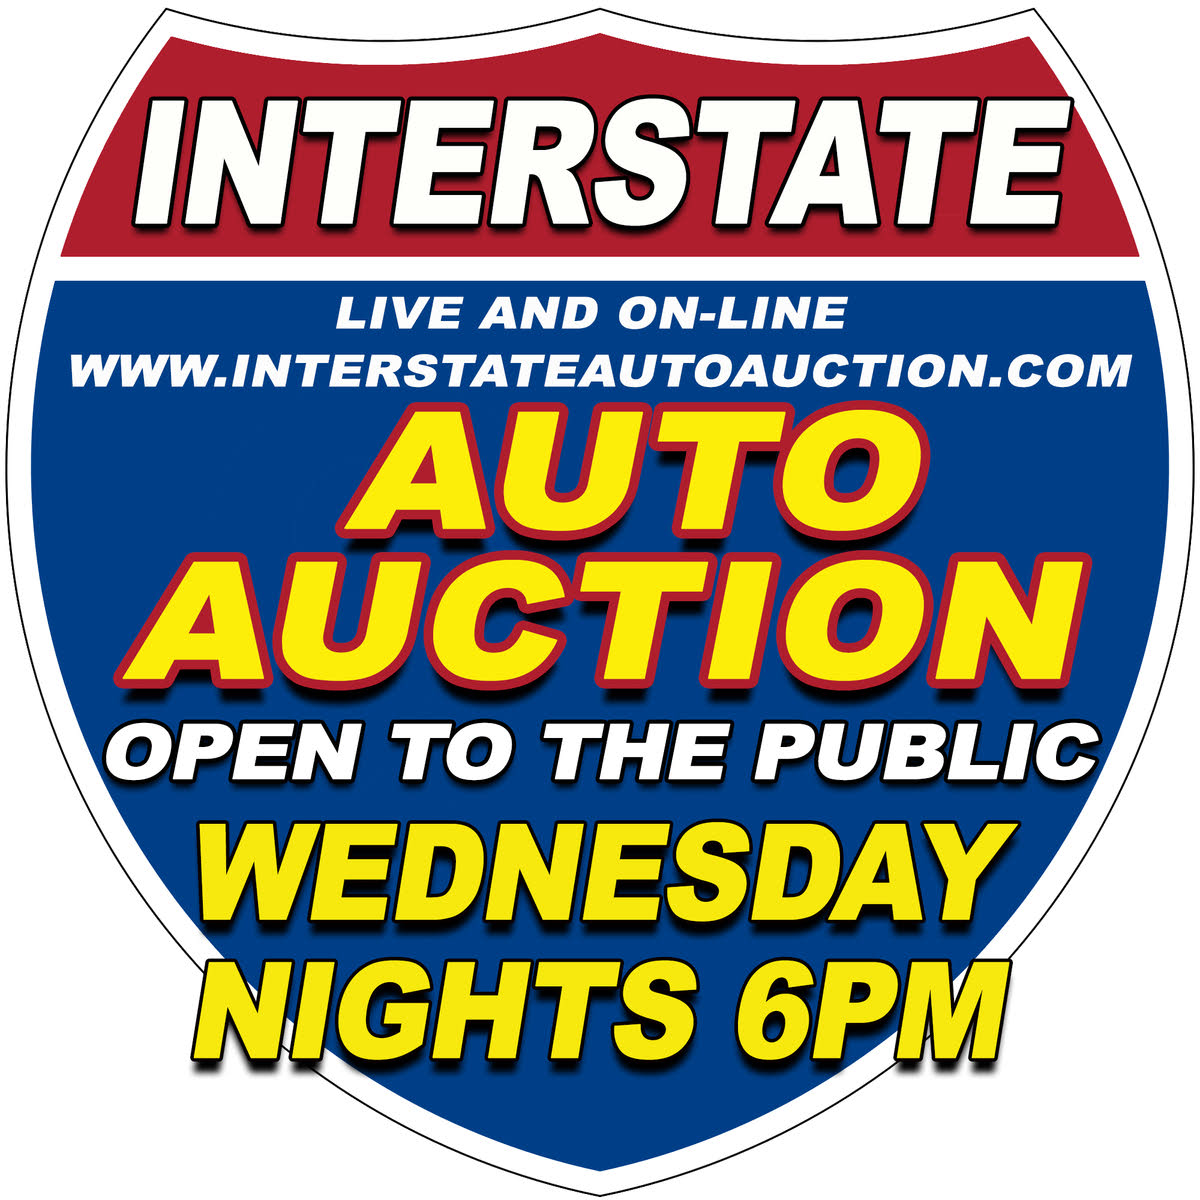 Volvo Dealers Nh >> Interstate Auto Auction - Salem, NH: Read Consumer reviews ...